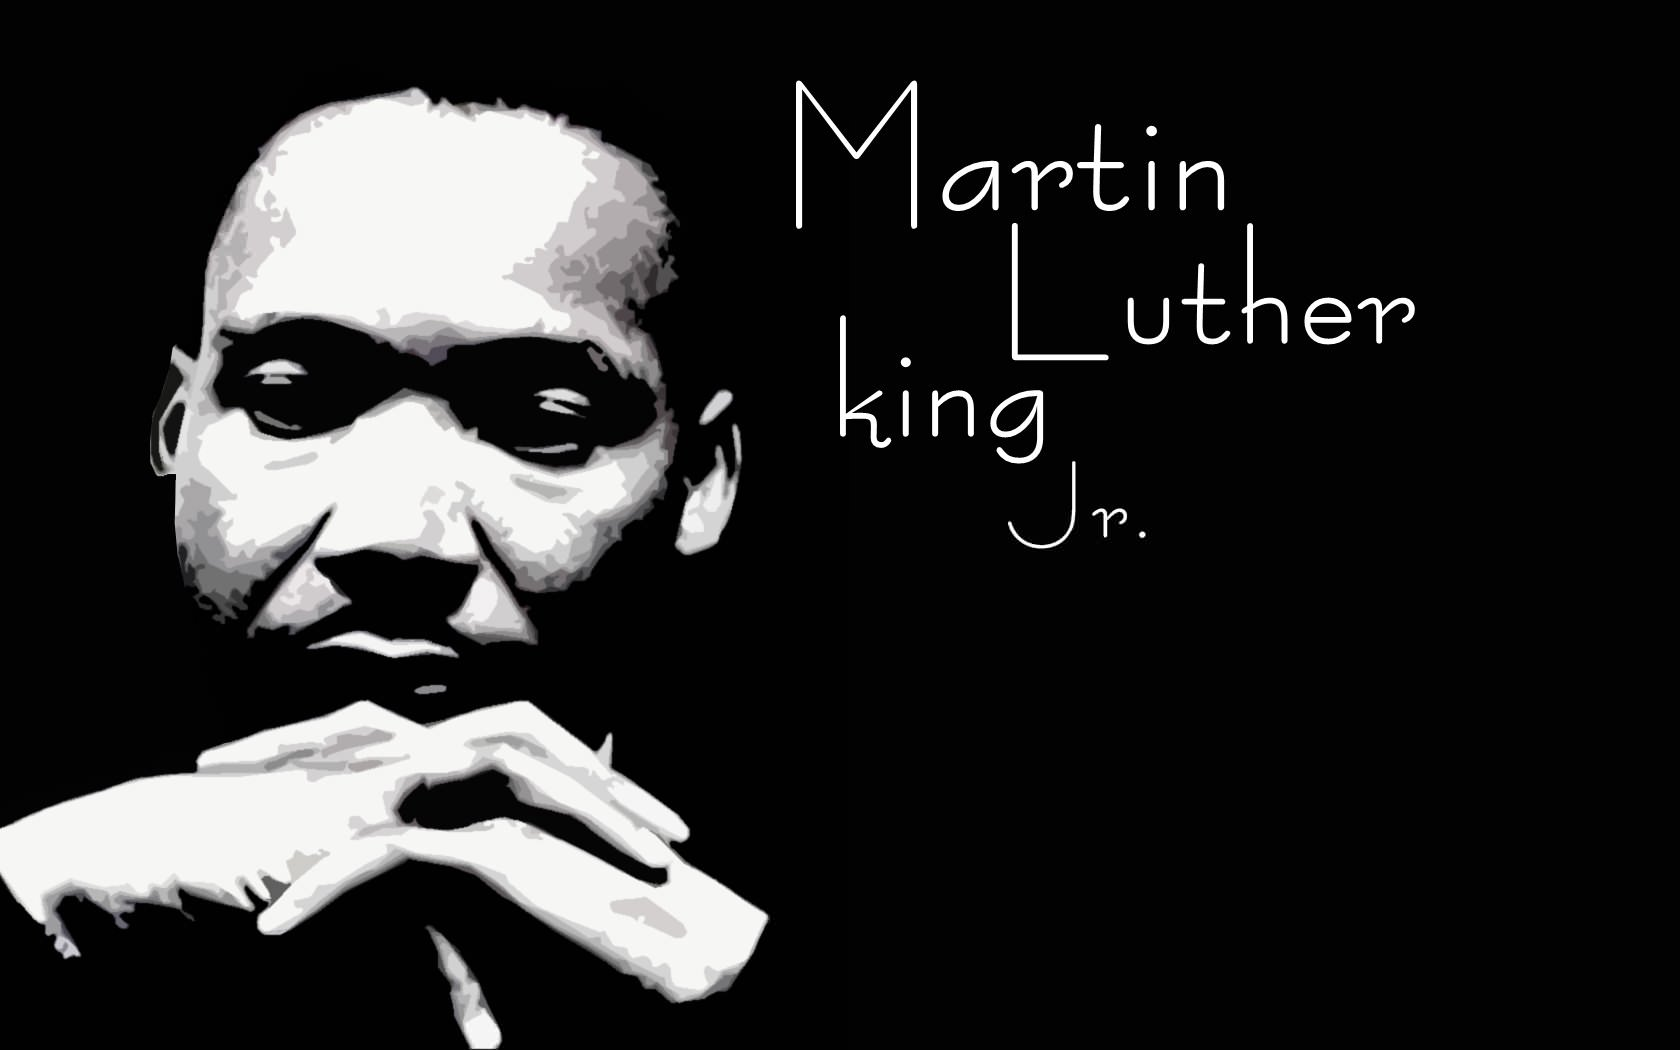 Download Martin Luther King Wallpaper Gallery